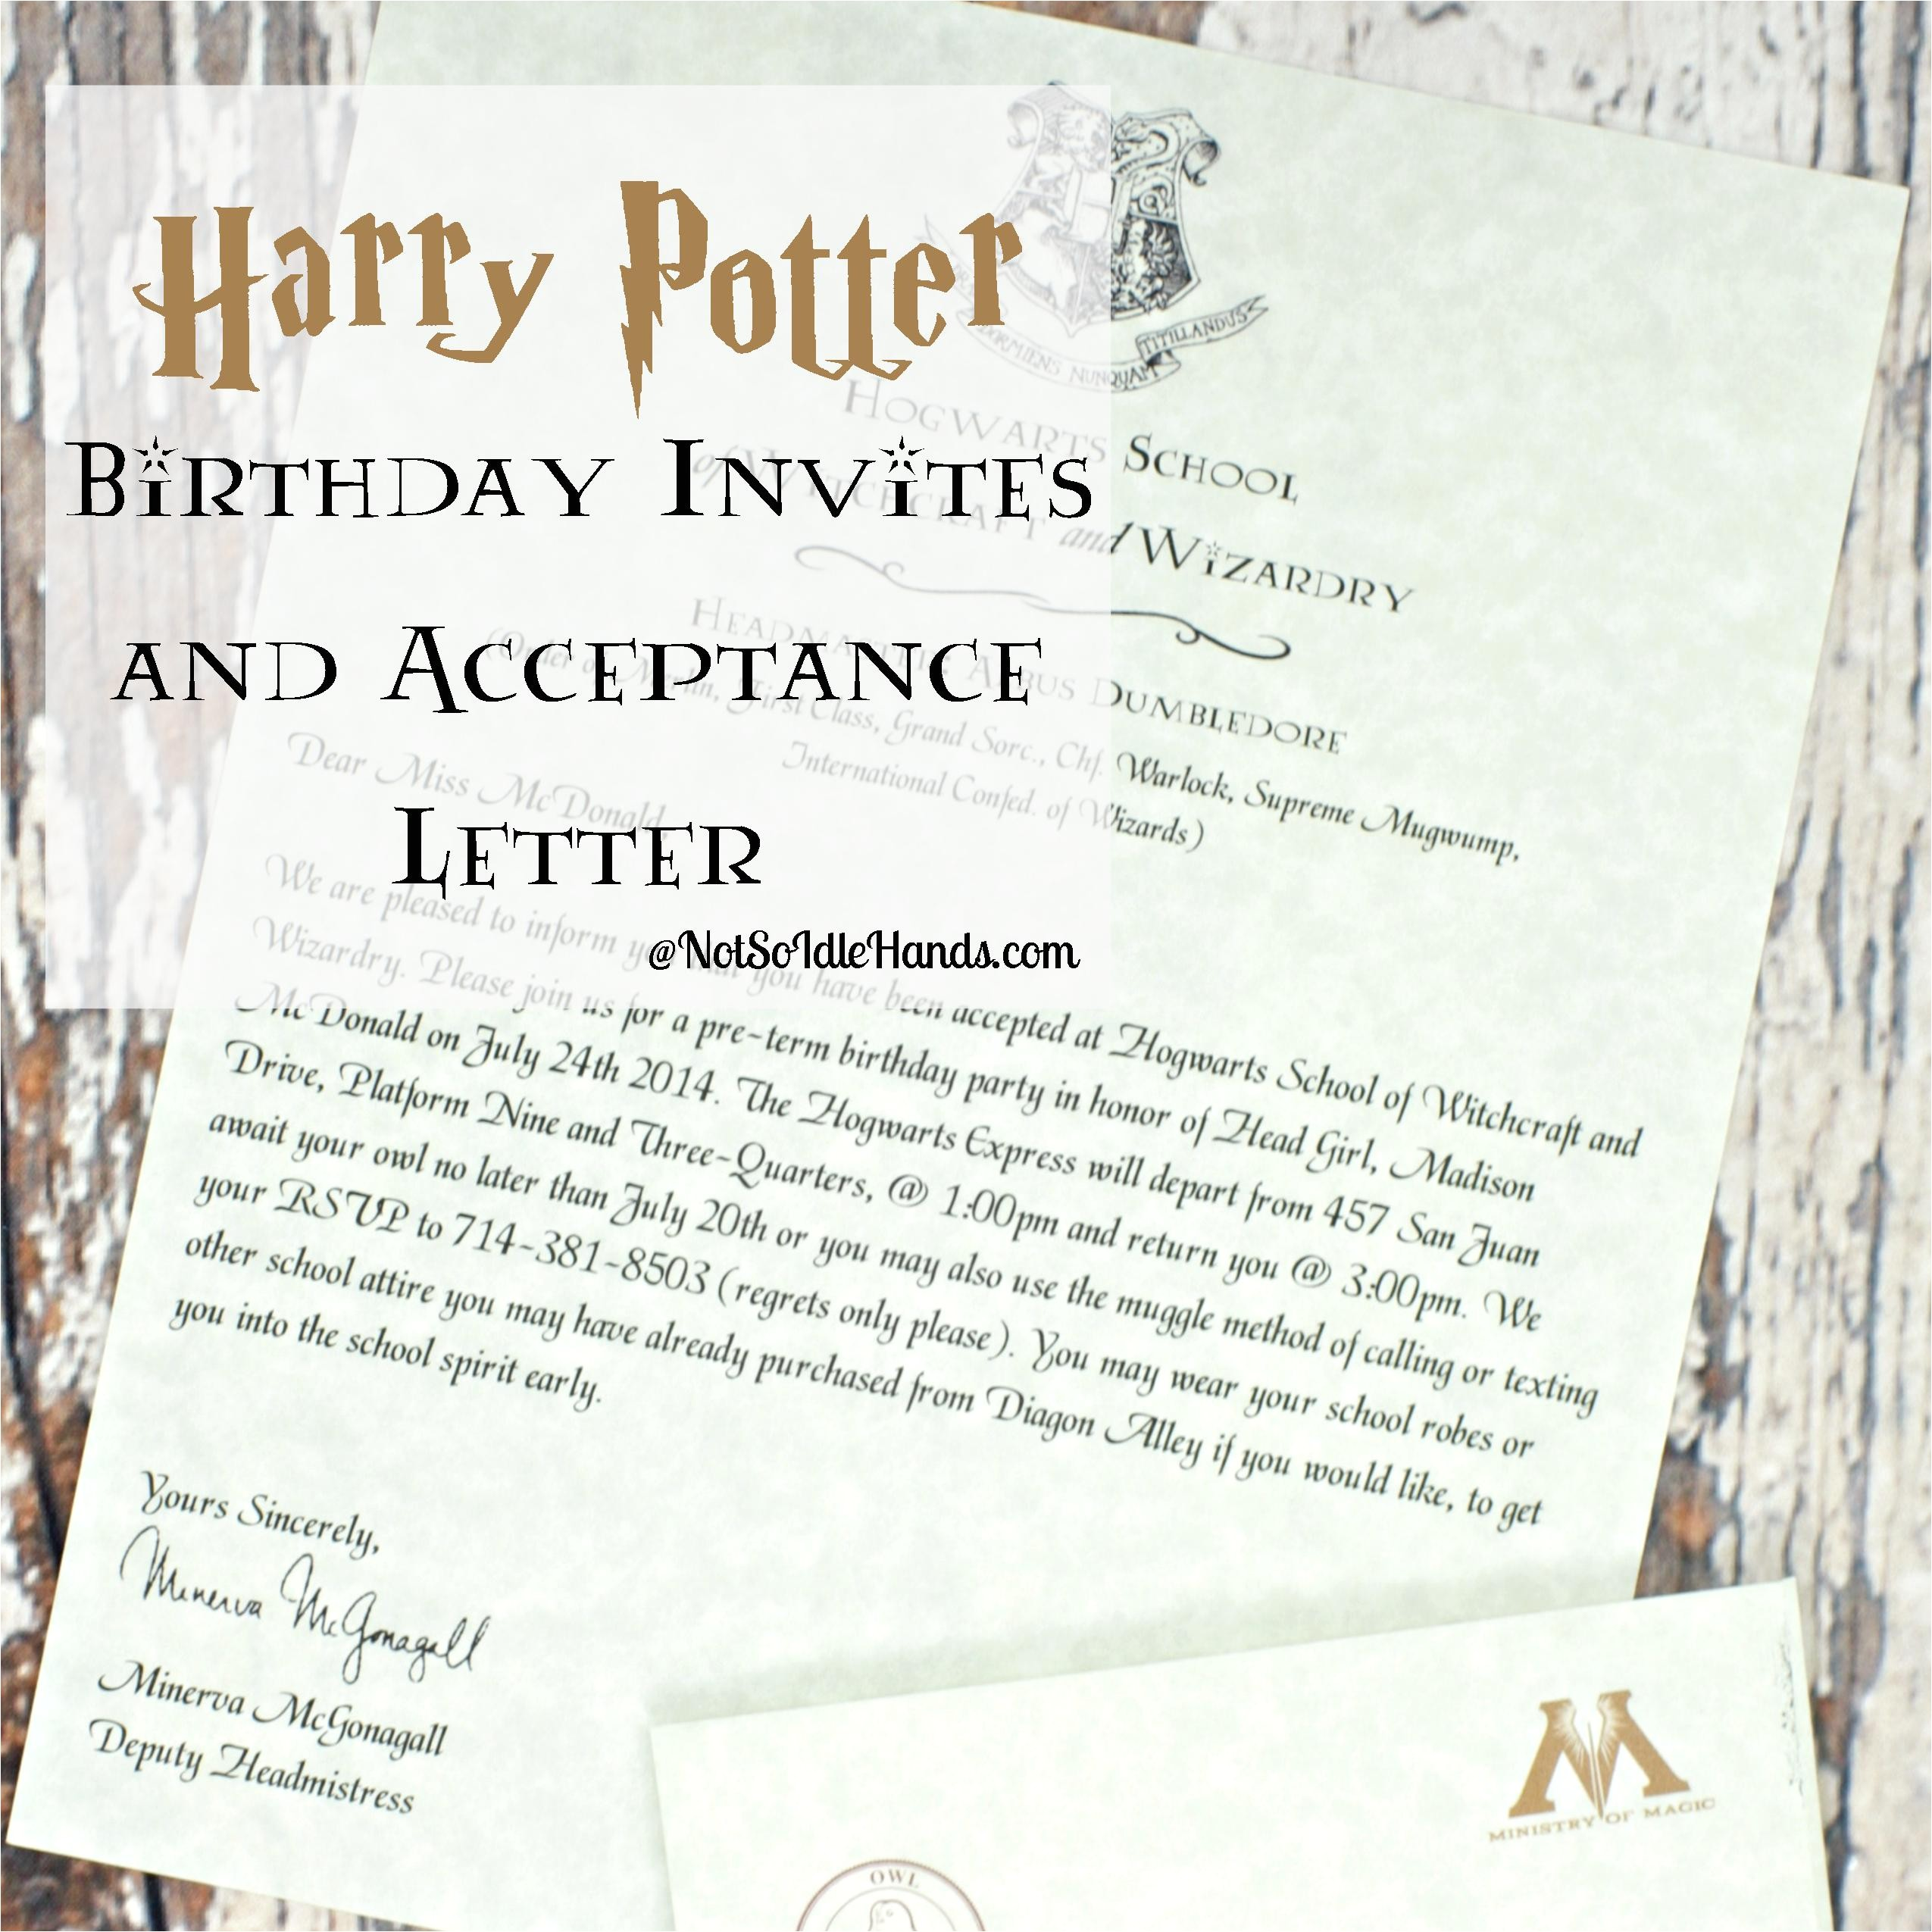 harry potter birthday invitations and authentic acceptance letter and party part 1